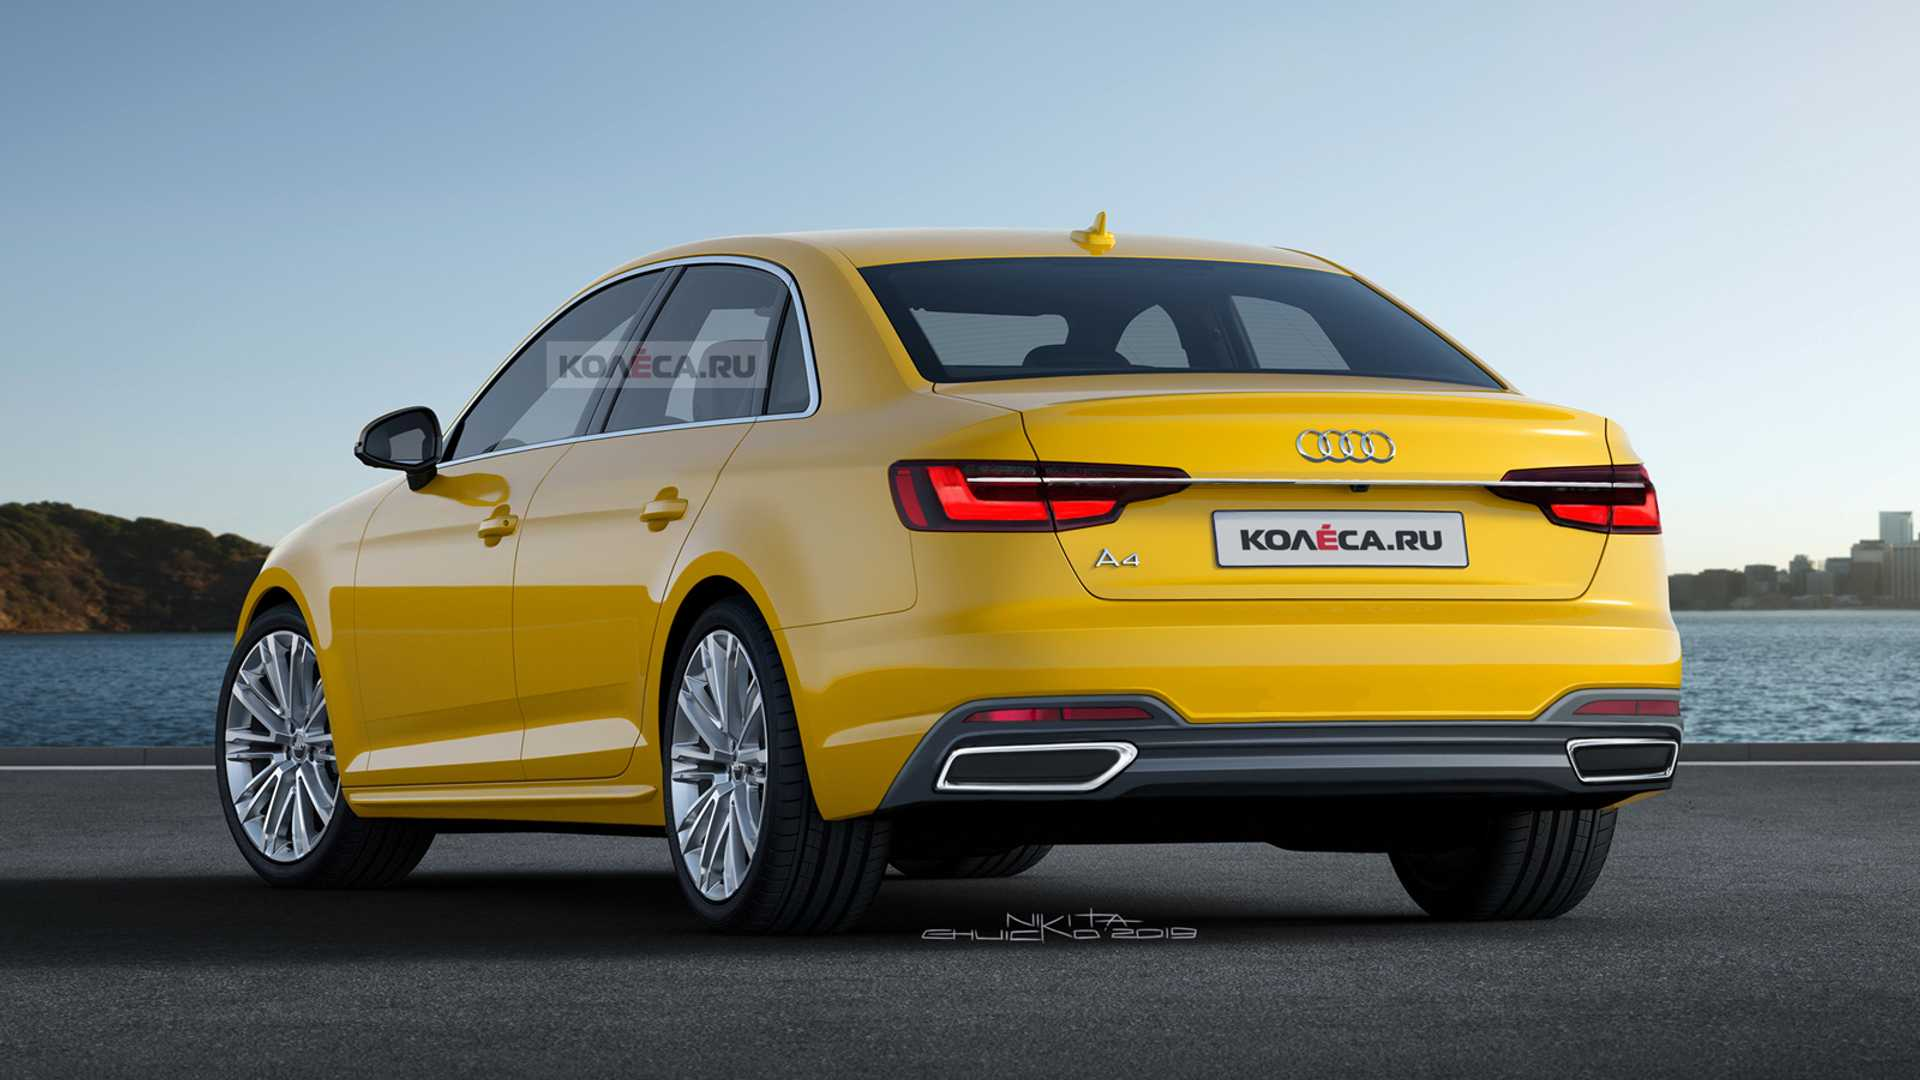 55 All New Audi A4 B10 2020 Picture with Audi A4 B10 2020